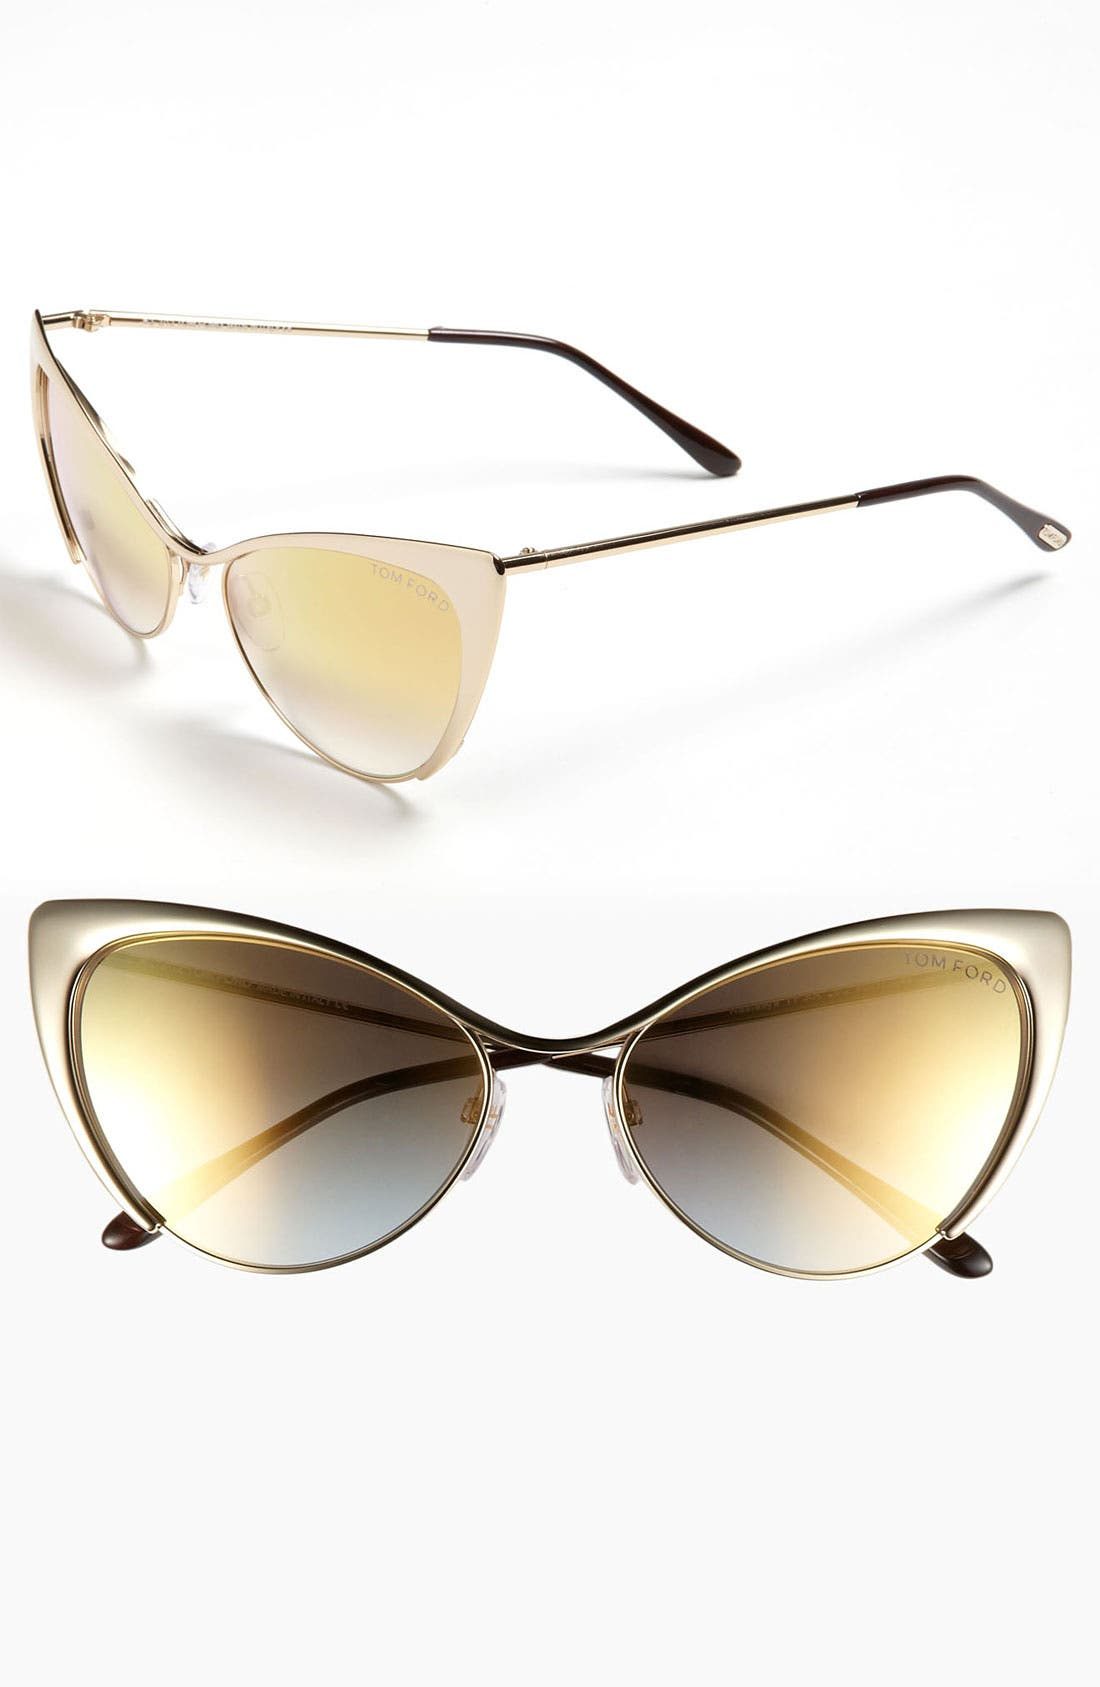 Alternate Image 1 Selected - Tom Ford 'Nastasya' 56mm Sunglasses